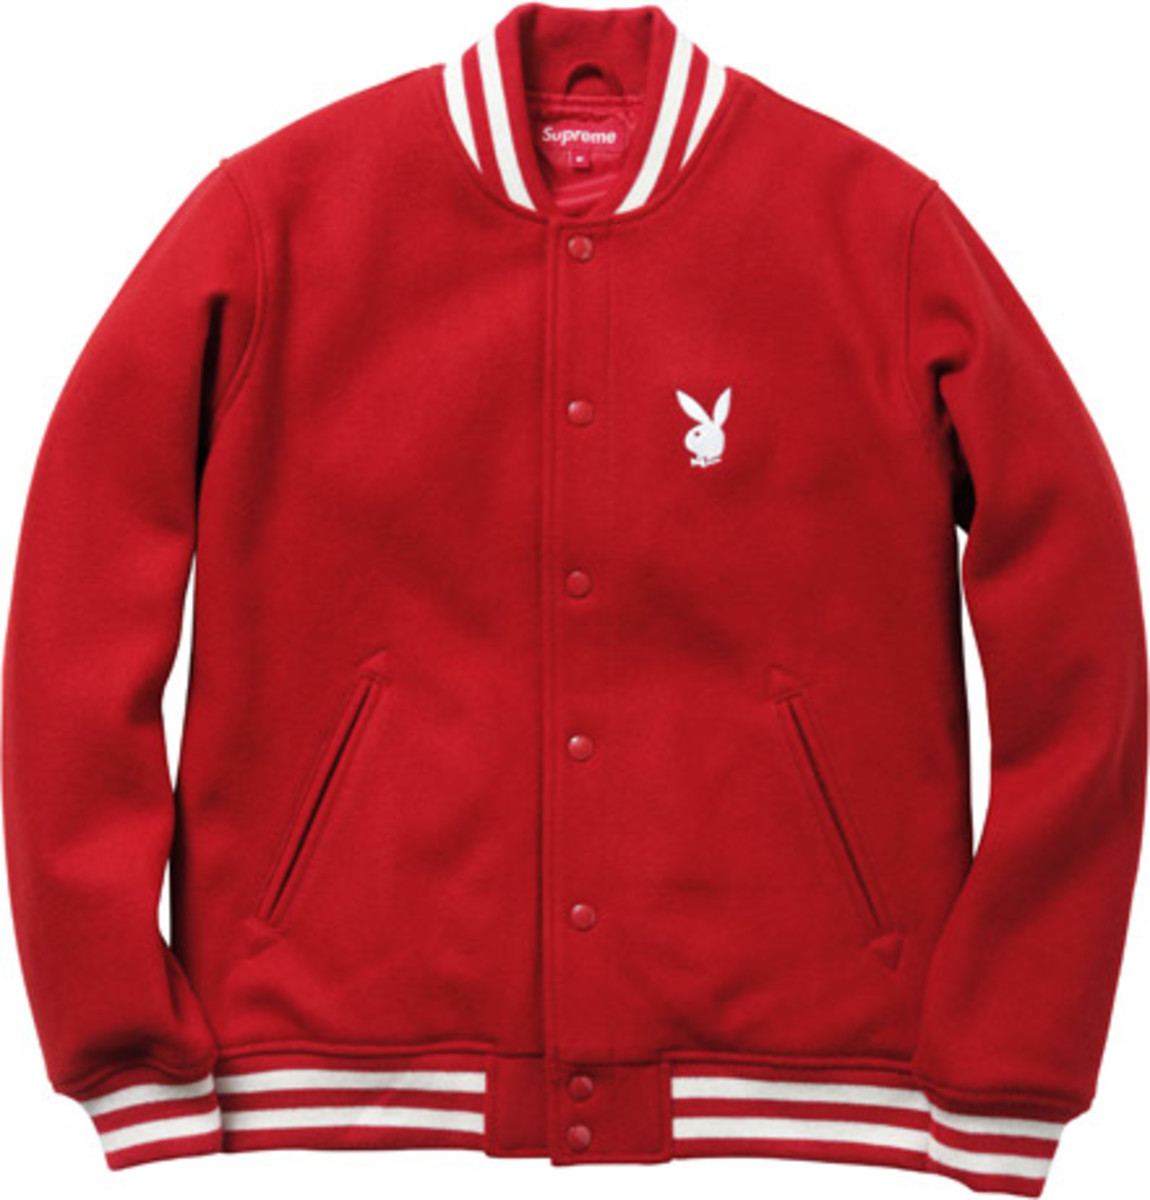 J1_red_front_1299497846